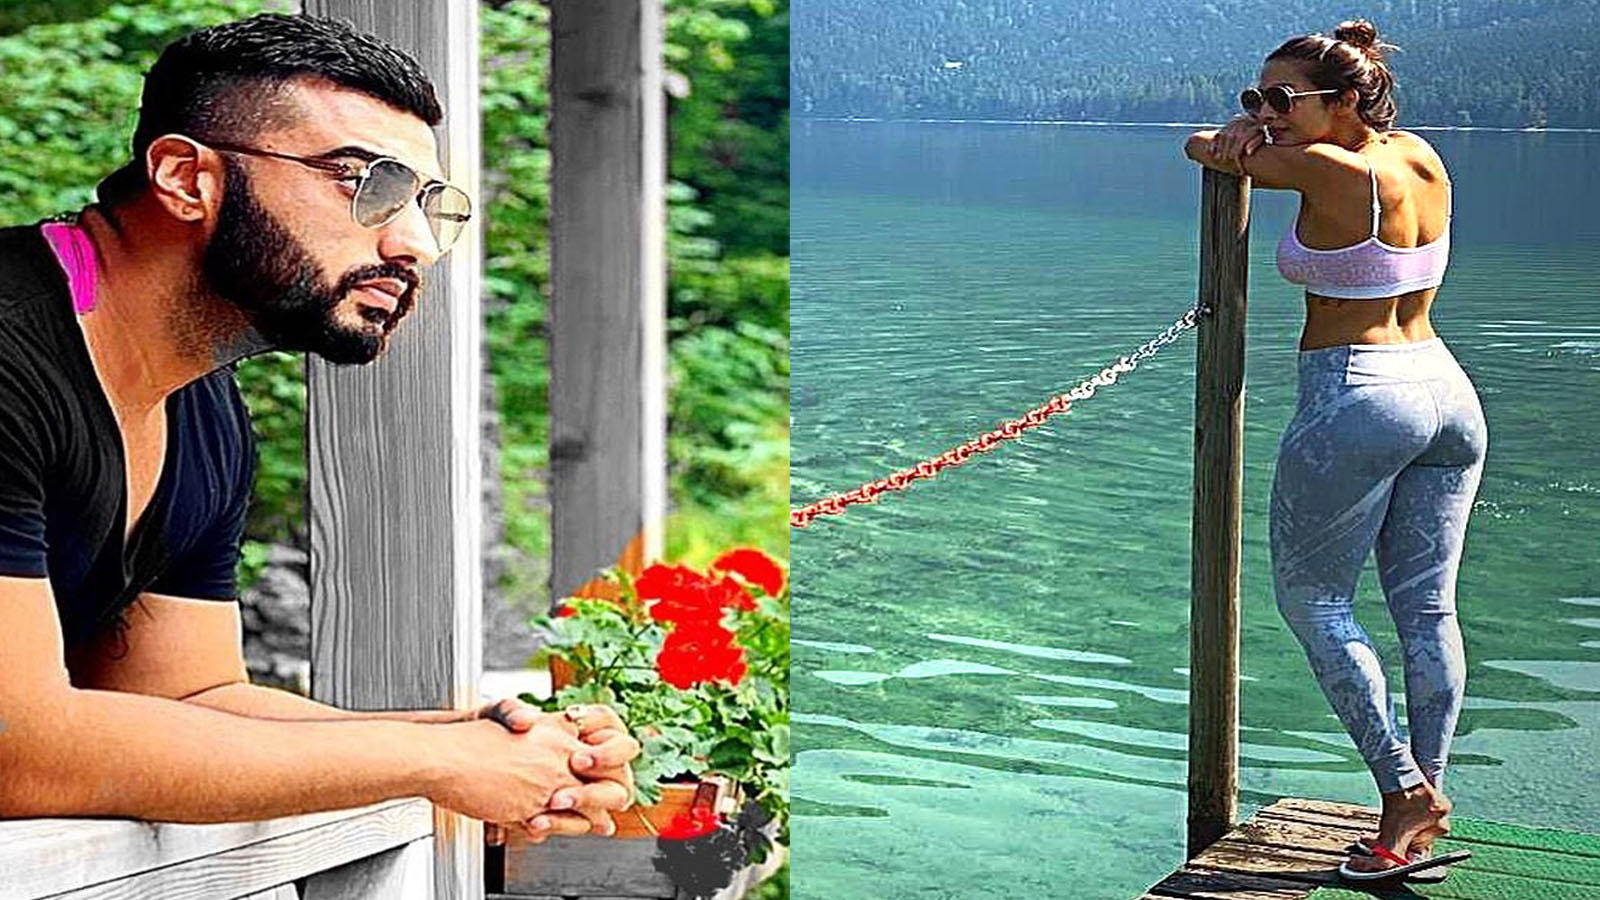 Sneak-peek into Arjun Kapoor and Malaika Arora's Austrian vacation